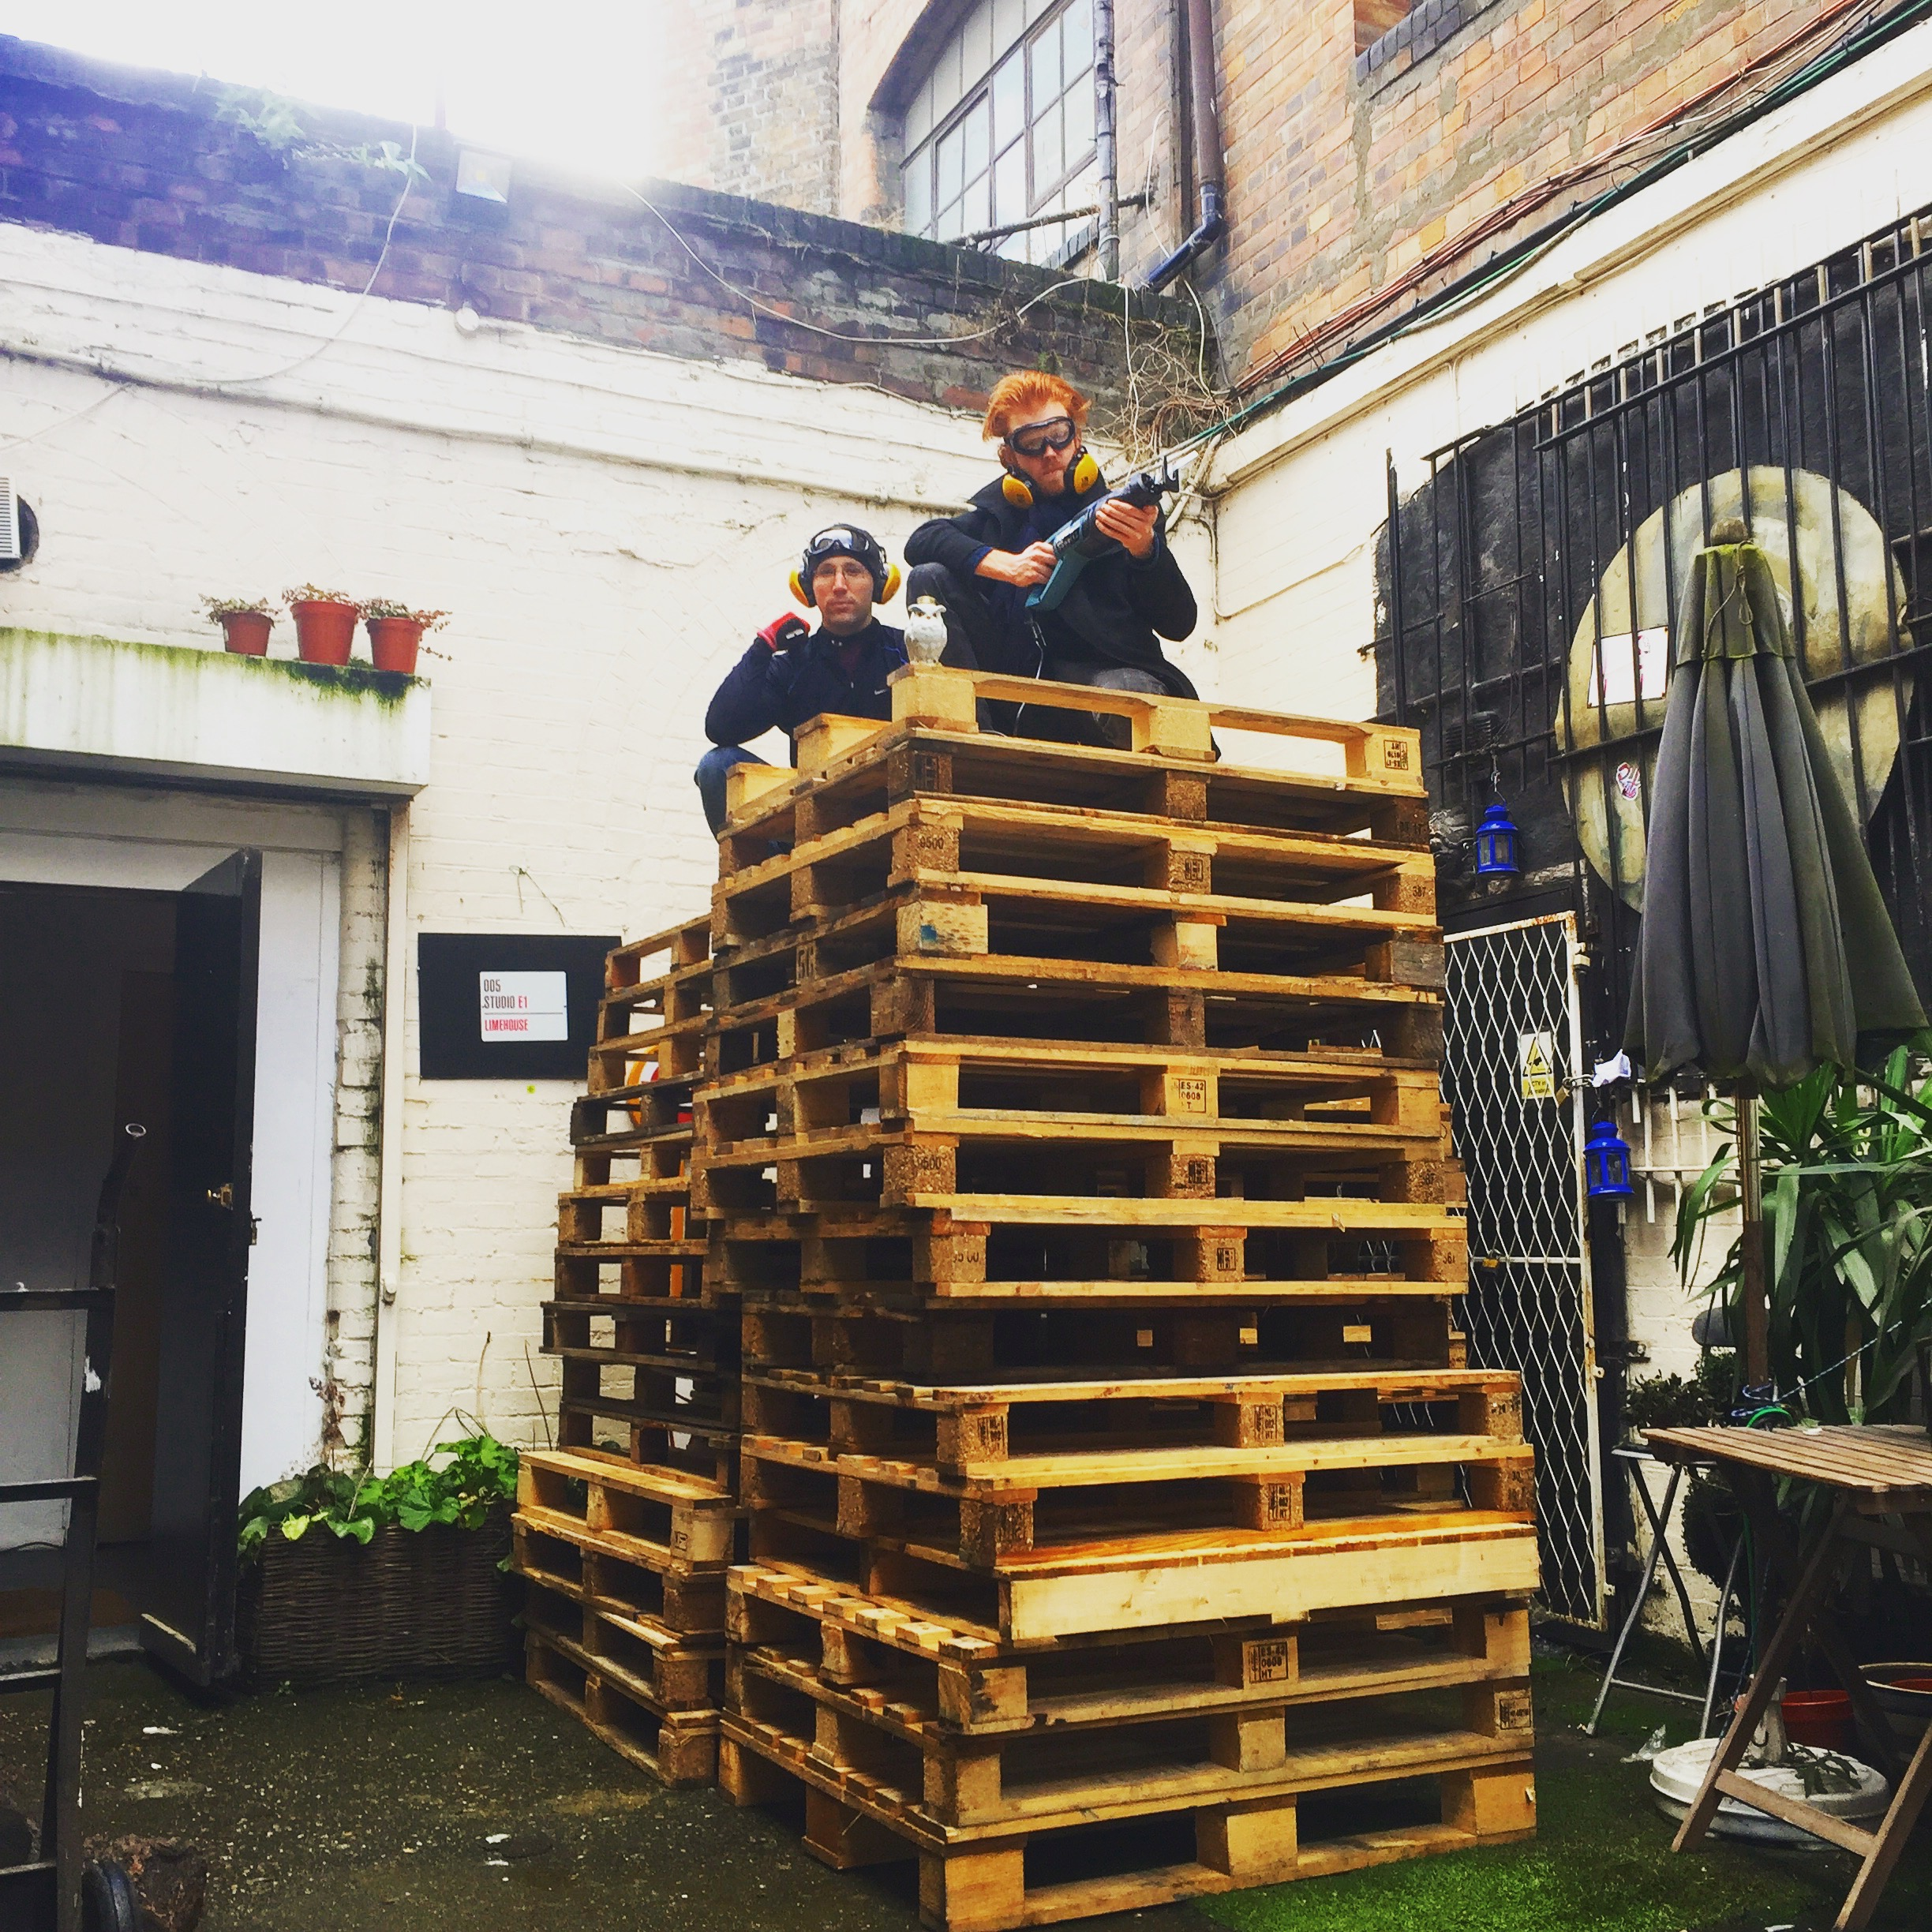 We built our first pop-up our of recycled pallets and a team of amazing interns. That scrappy, maker spirit is the lifeblood of what we do.